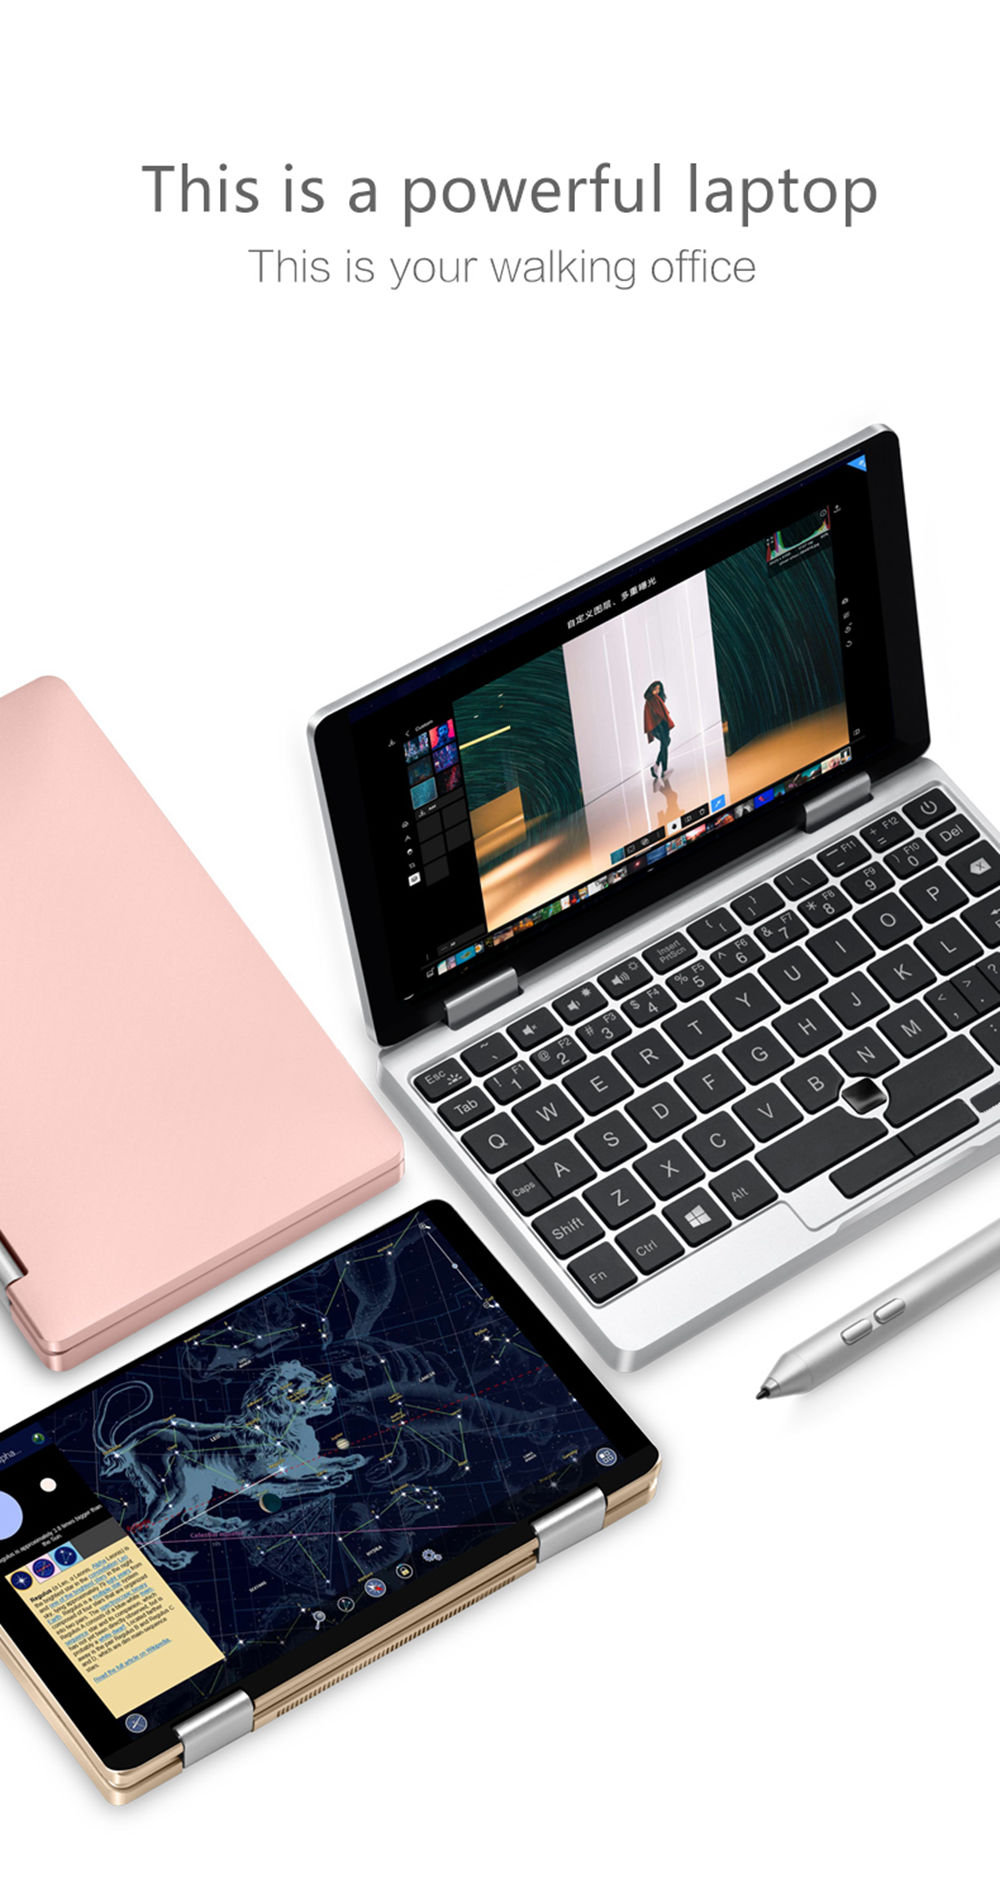 "One Netbook One Mix 2S Yoga Pocket Laptop Intel Core M3-8100Y Dual Core Touch ID 7"" IPS Screen 1920*1200 Windows 10 8GB DDR3 256GB PCI-E SSD - Silver"